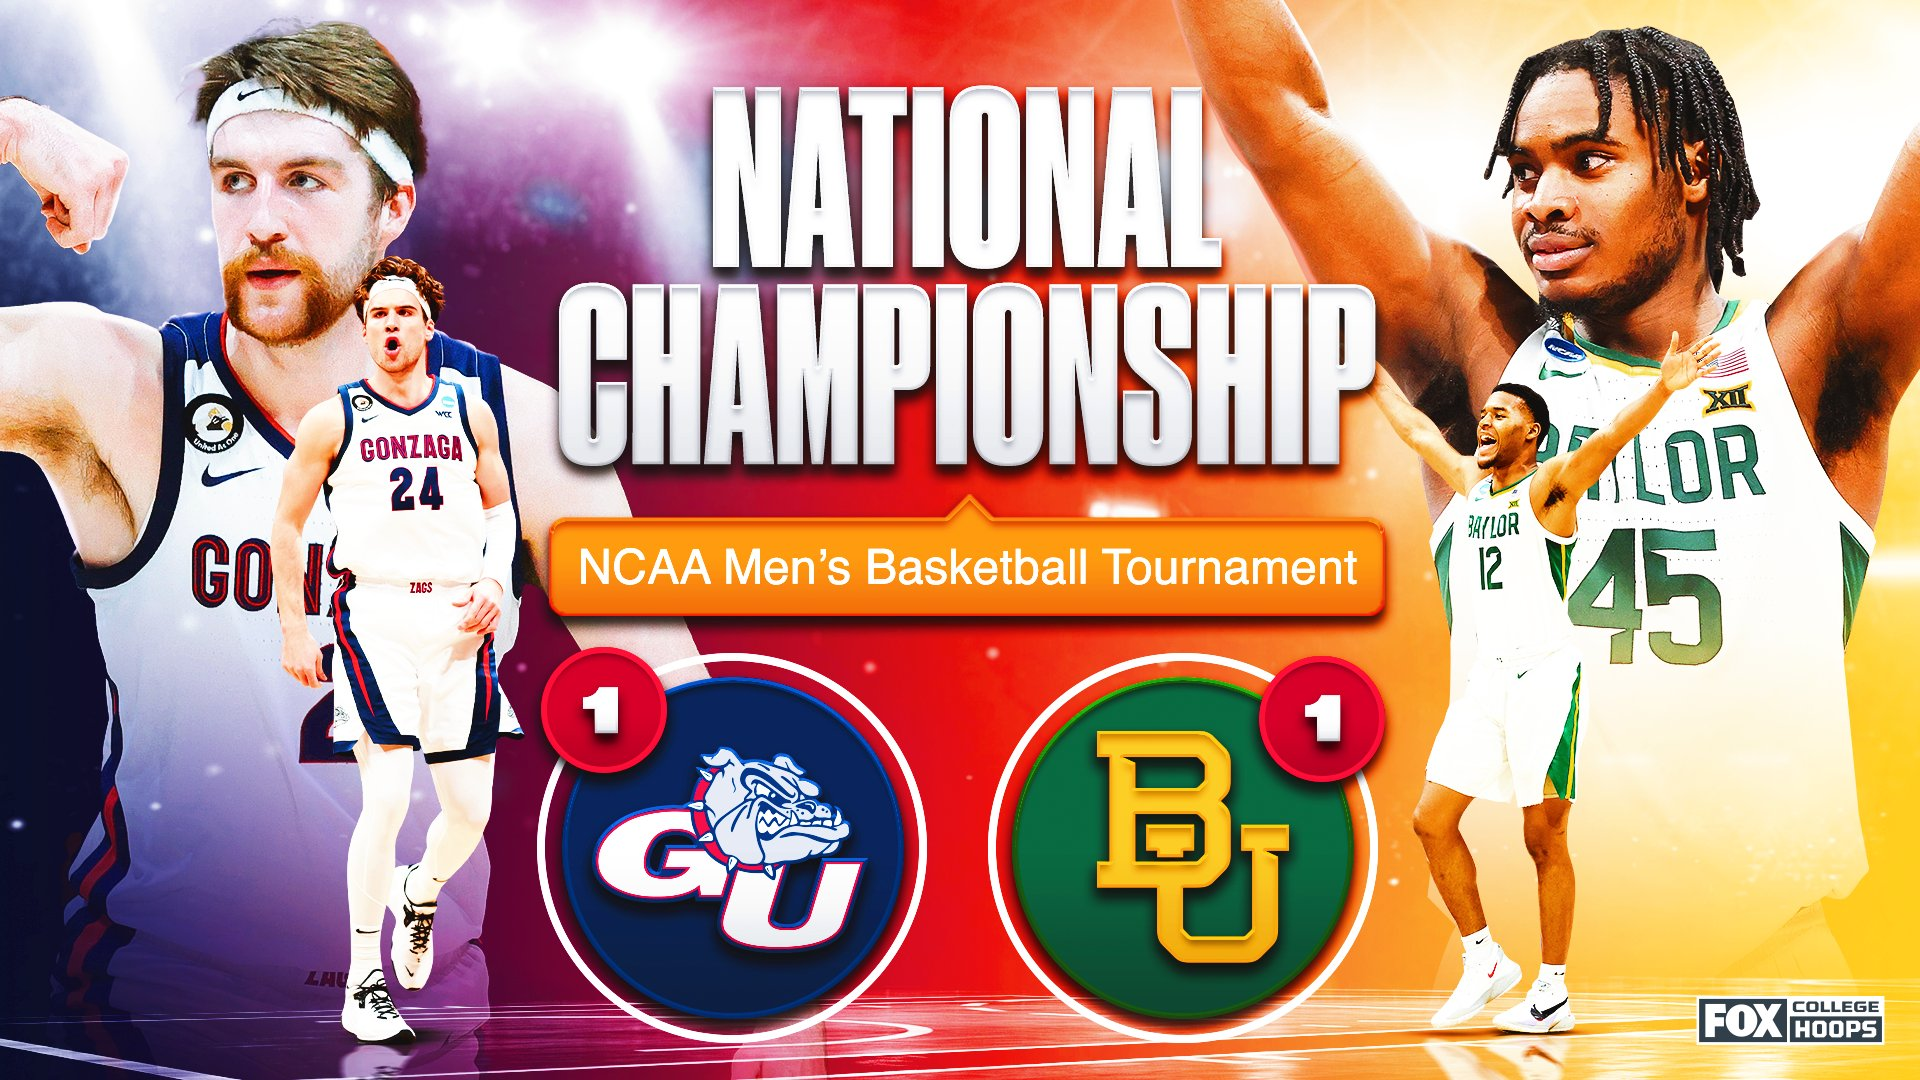 How to bet the national championship game between Baylor and Gonzaga